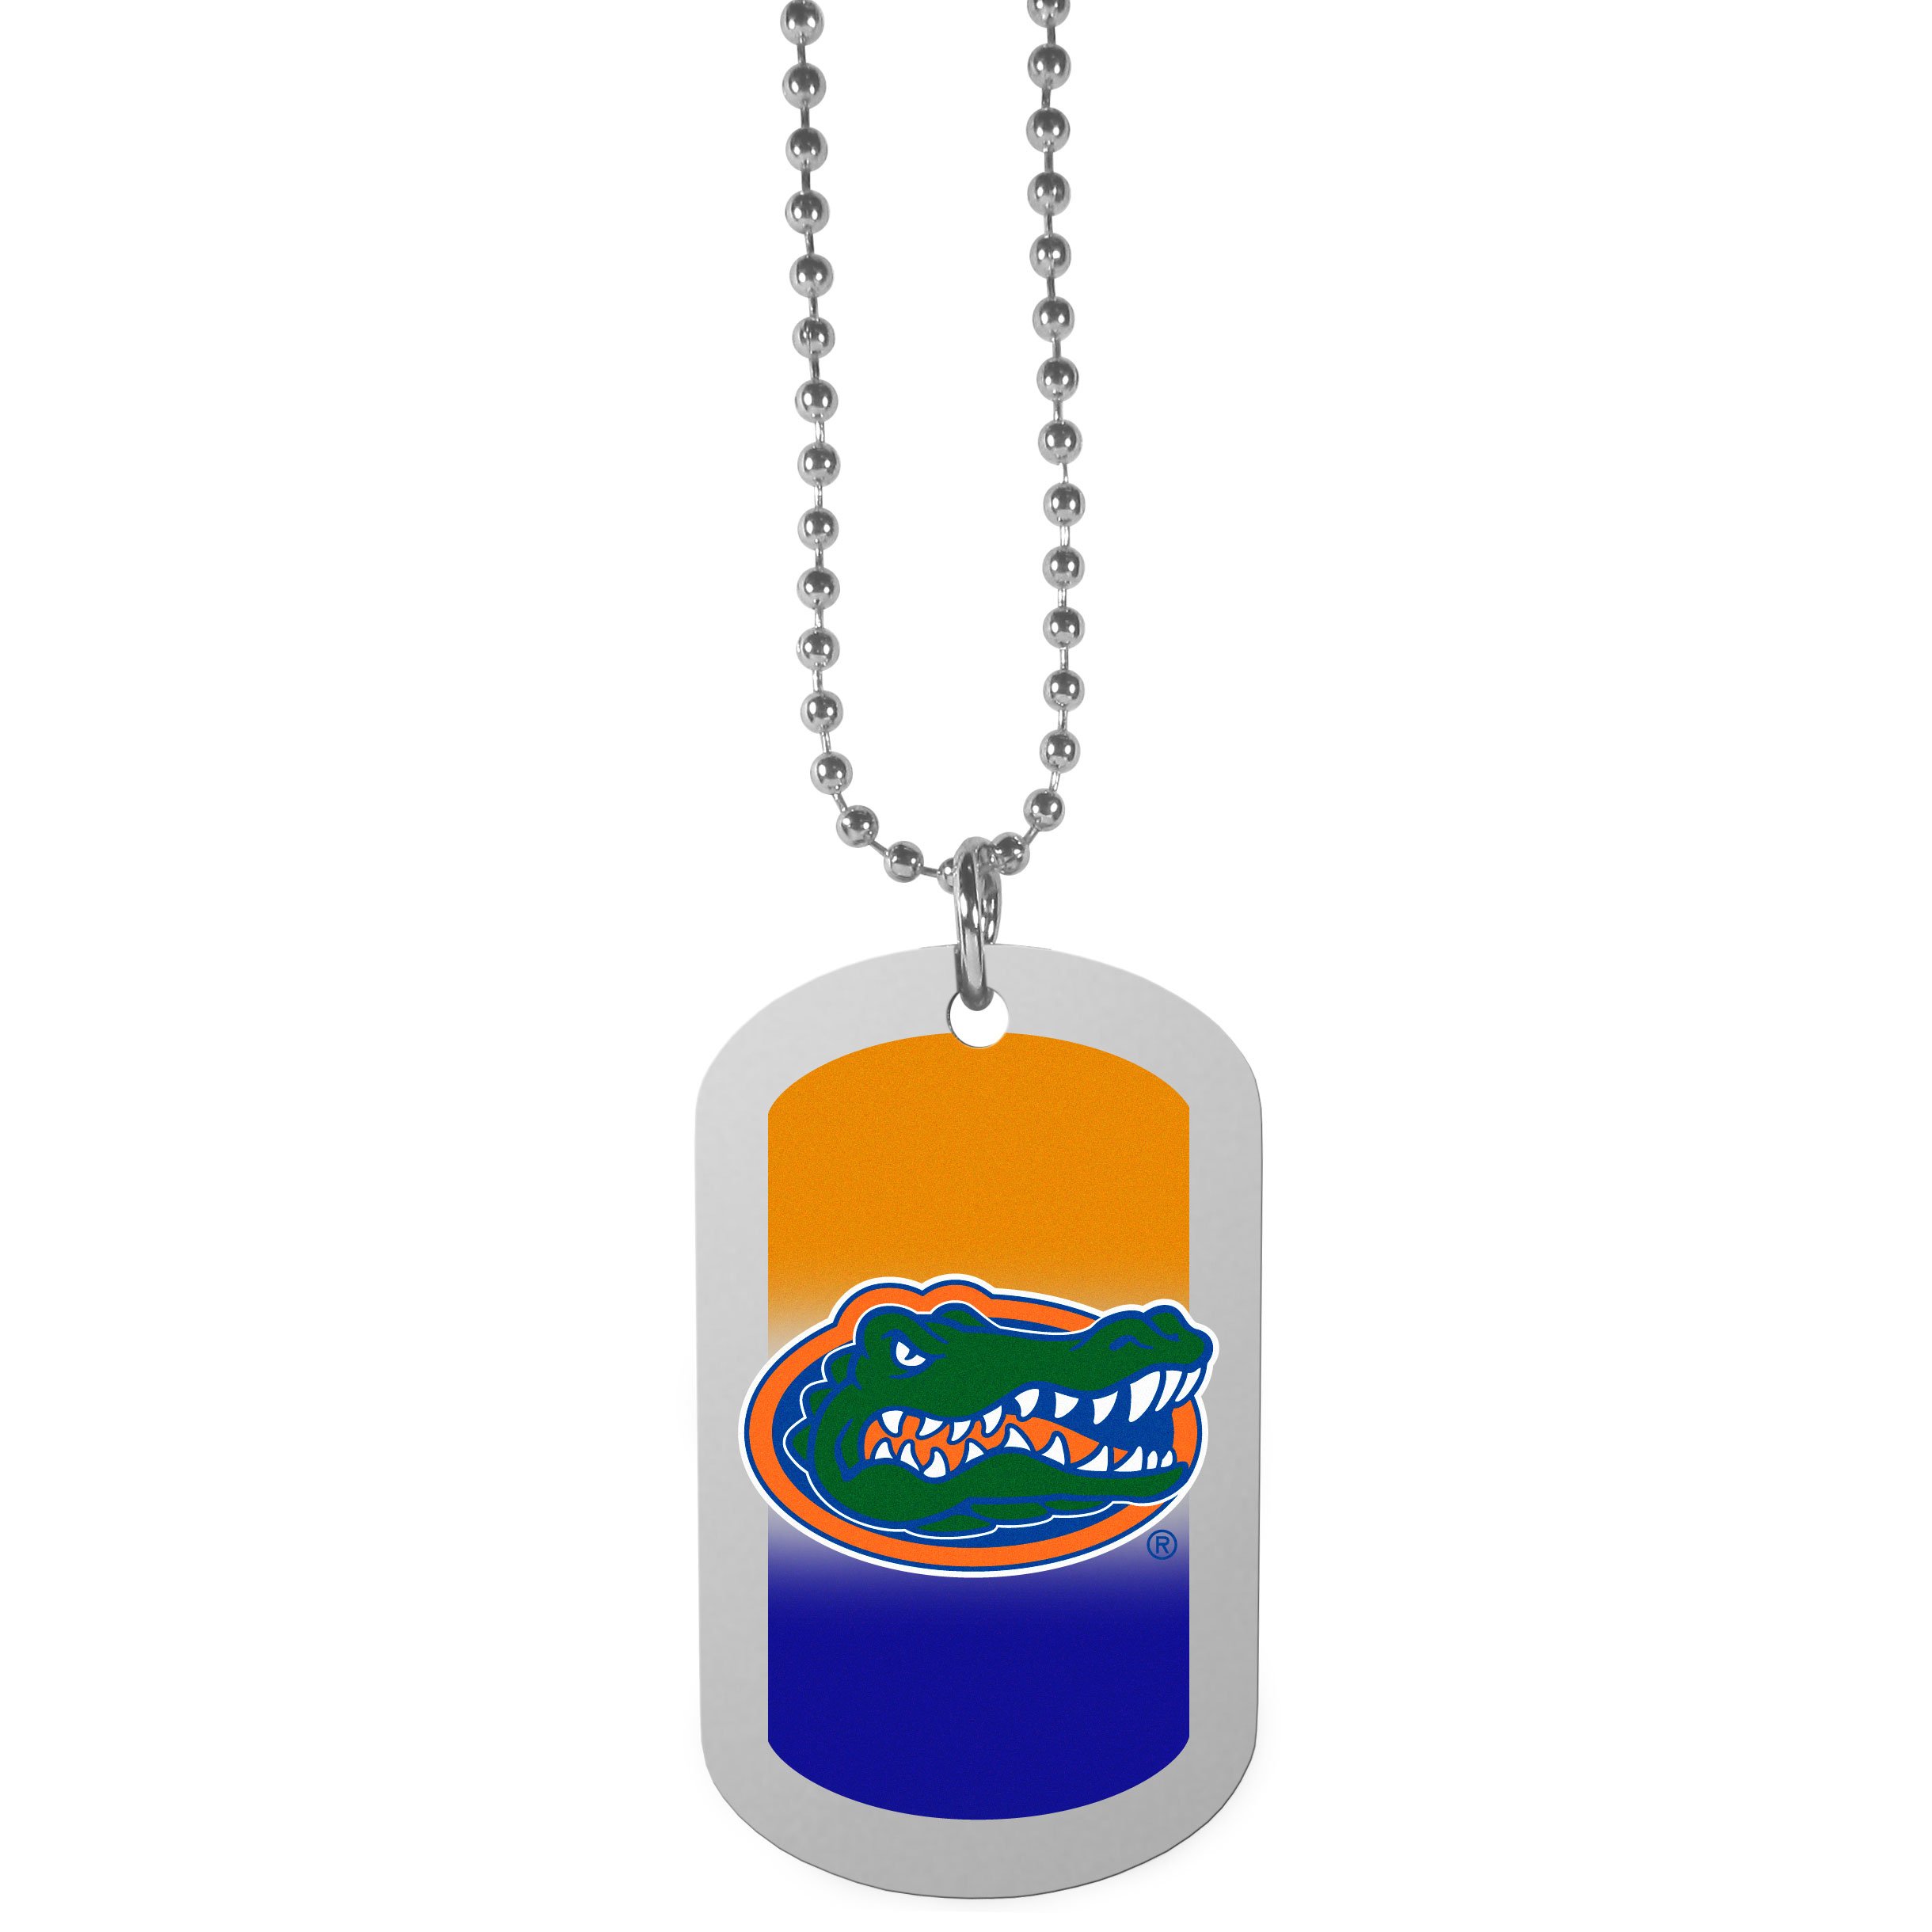 Florida Gators Team Tag Necklace - Dog tag necklaces are a fashion statement that is here to stay. The sporty version of the classic tag features a gradient print in team colors featuring a full color team logo over a high polish tag to create a bold and sporty look. The tag comes on a 26 inch ball chain with a ball and joint clasp. Any Florida Gators would be proud to wear this attractive fashion accessory.